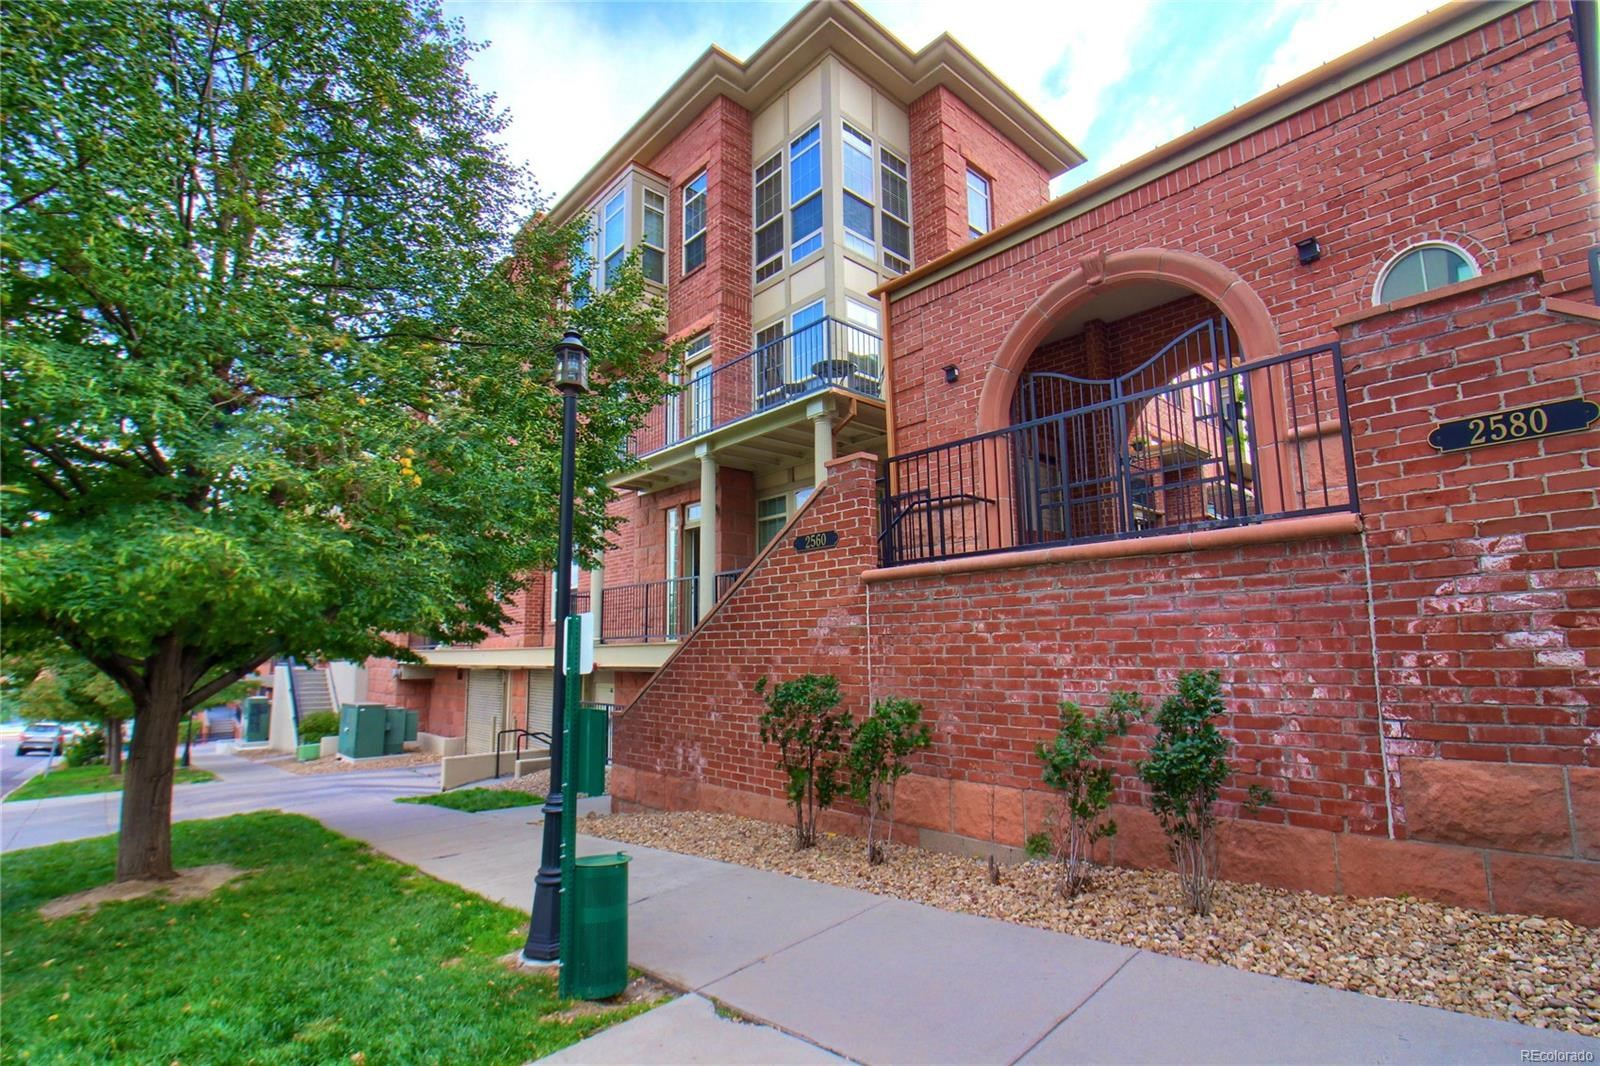 MLS# 4665676 - 2560  17th Street, Denver, CO 80211